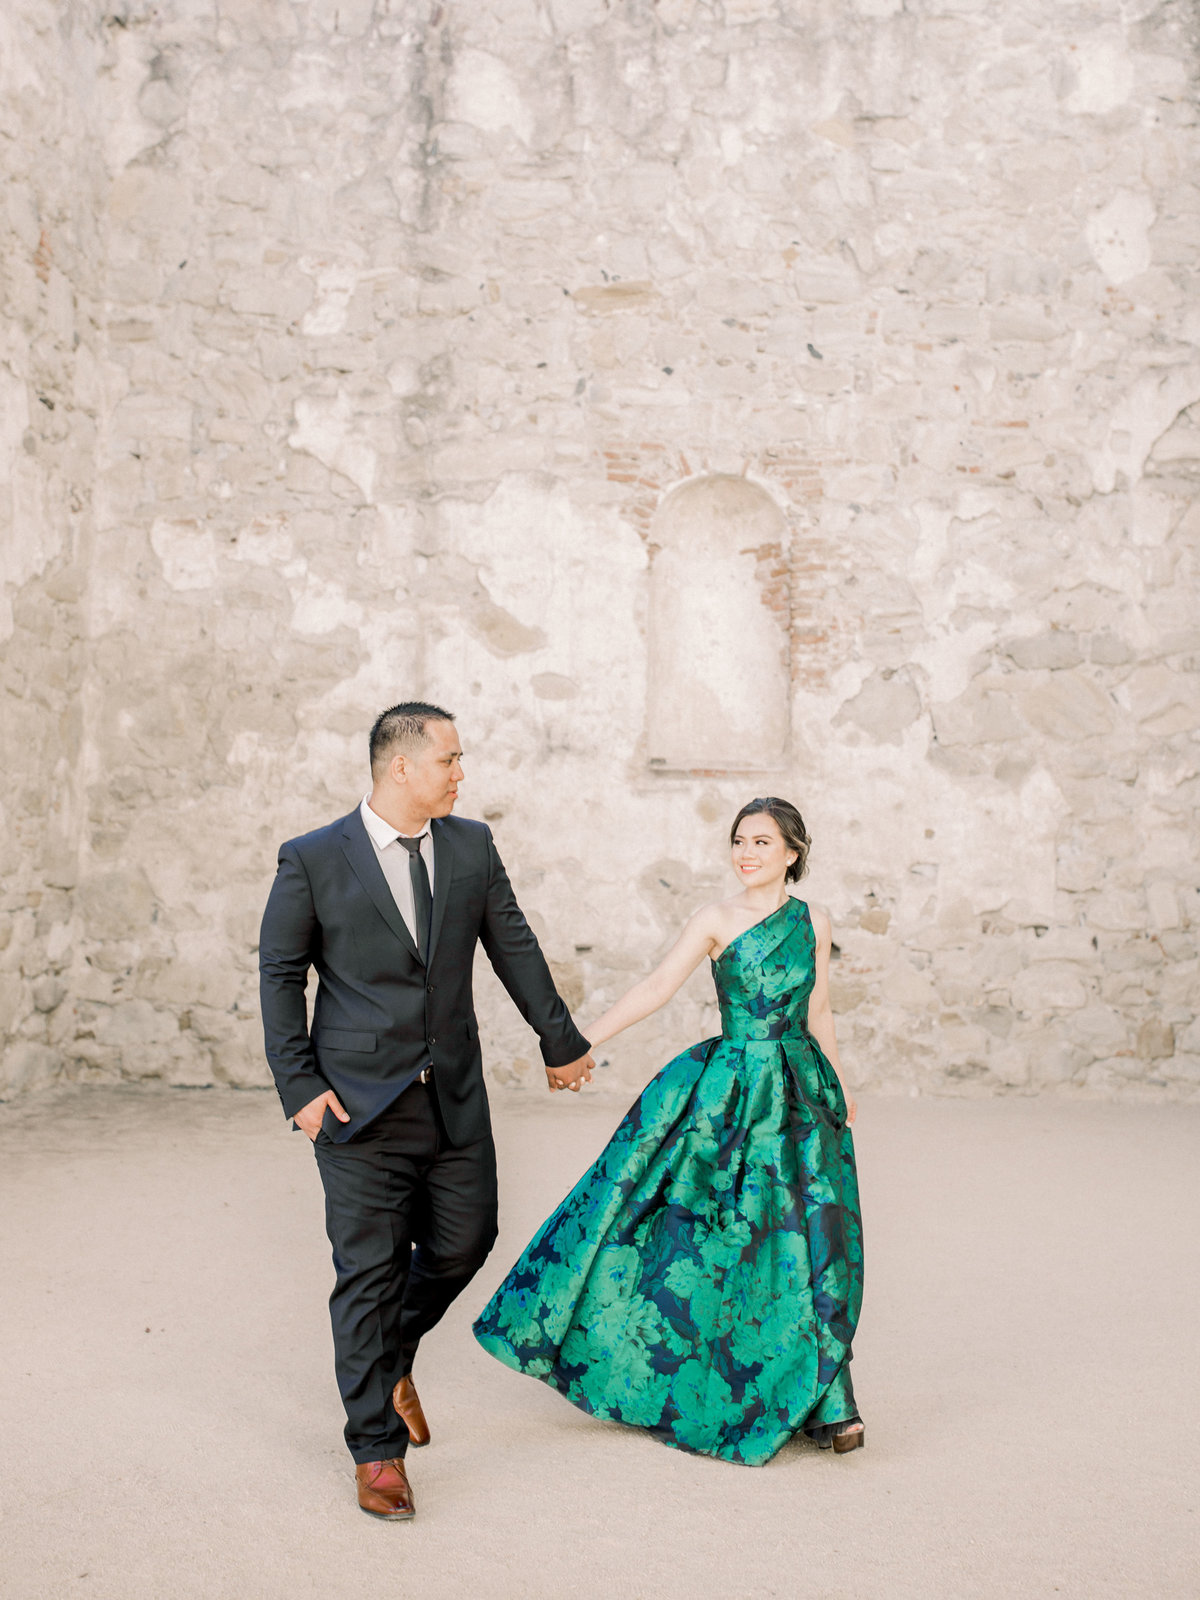 Babsie-Ly-Photography-San-Juan-Capistrano-Missions-Engagement-Session-Asian-Photographer-014